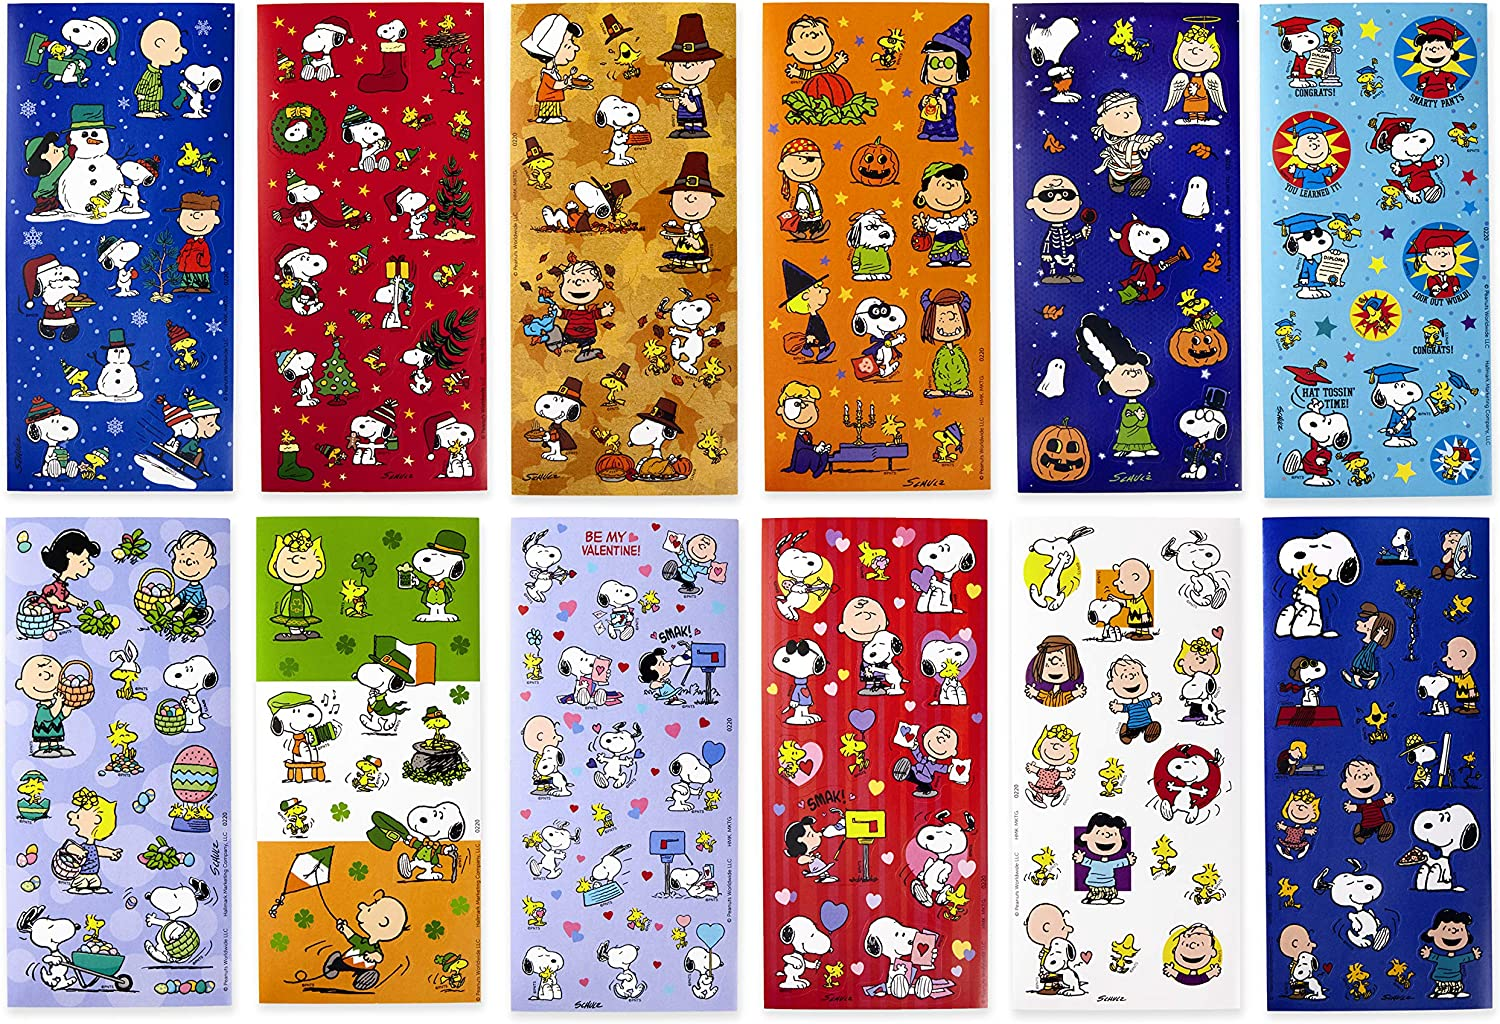 Pack of 12 Sheets/—All Occasion, Halloween, Valentines Day, Holiday Hallmark Peanuts Stickers for Kids